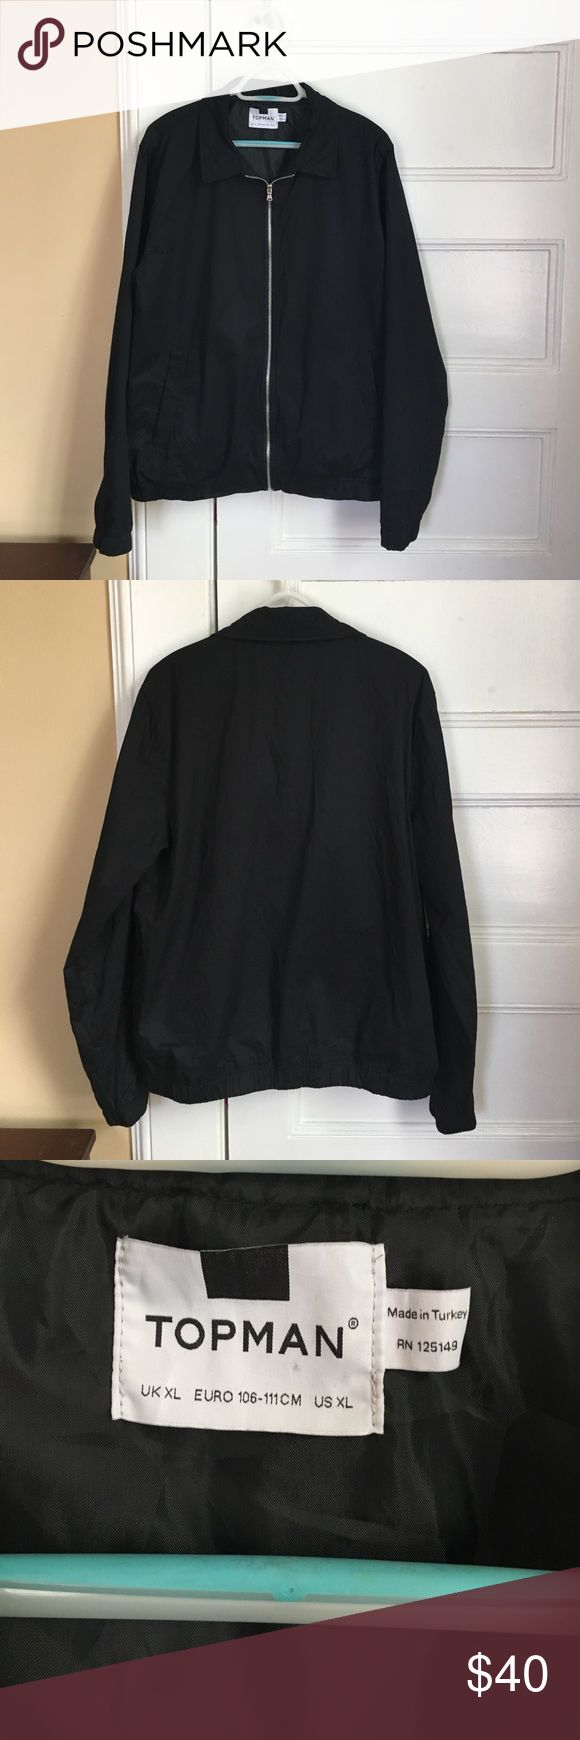 Mens gloves topman - Topman Black Harrington Jacket Xl Euc